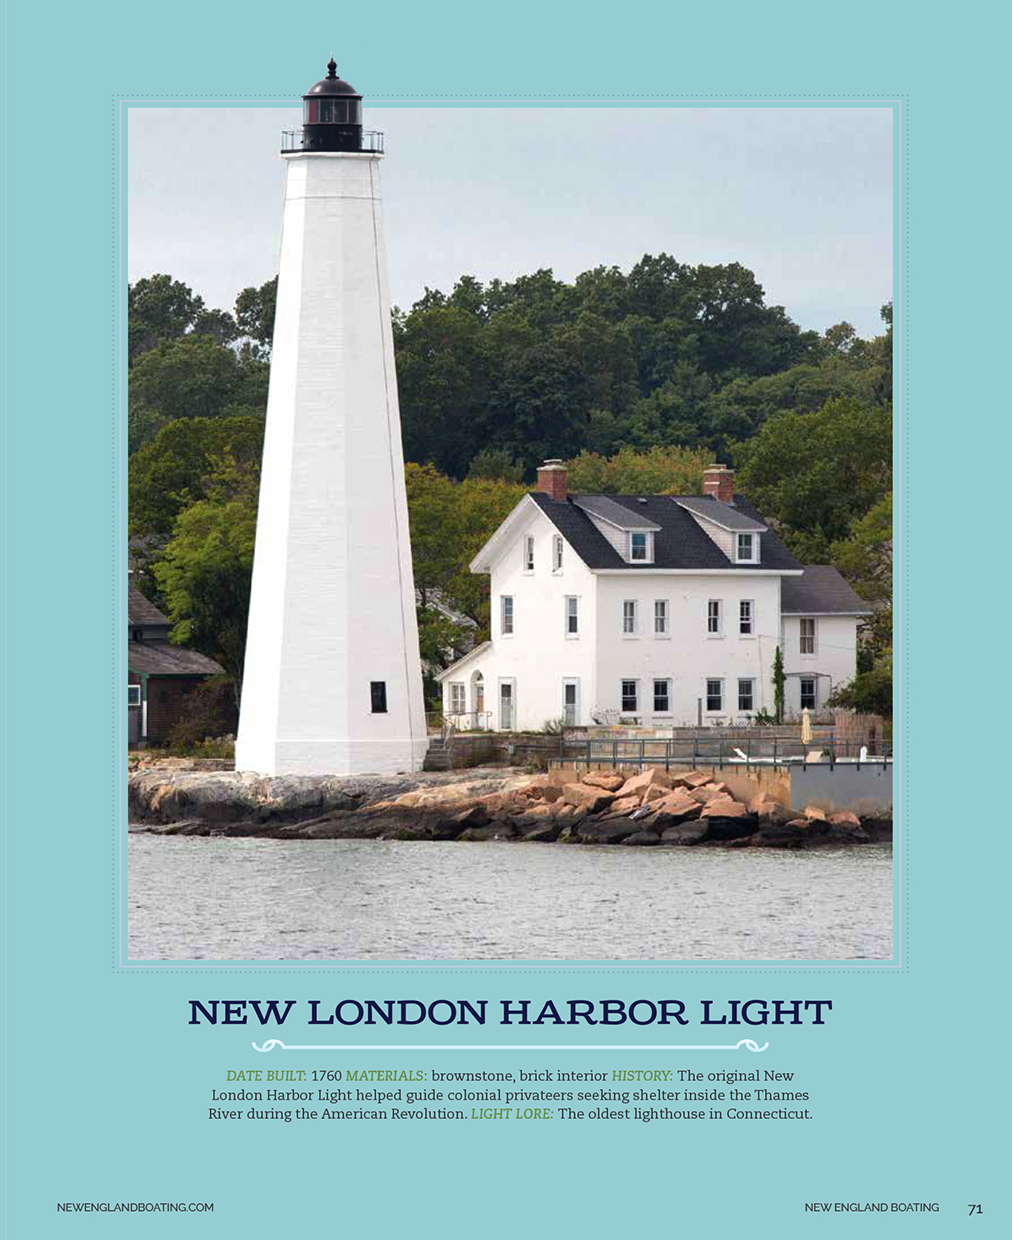 New-England-Boating-New-London-Harbor-Light-Caryn-B-Davis